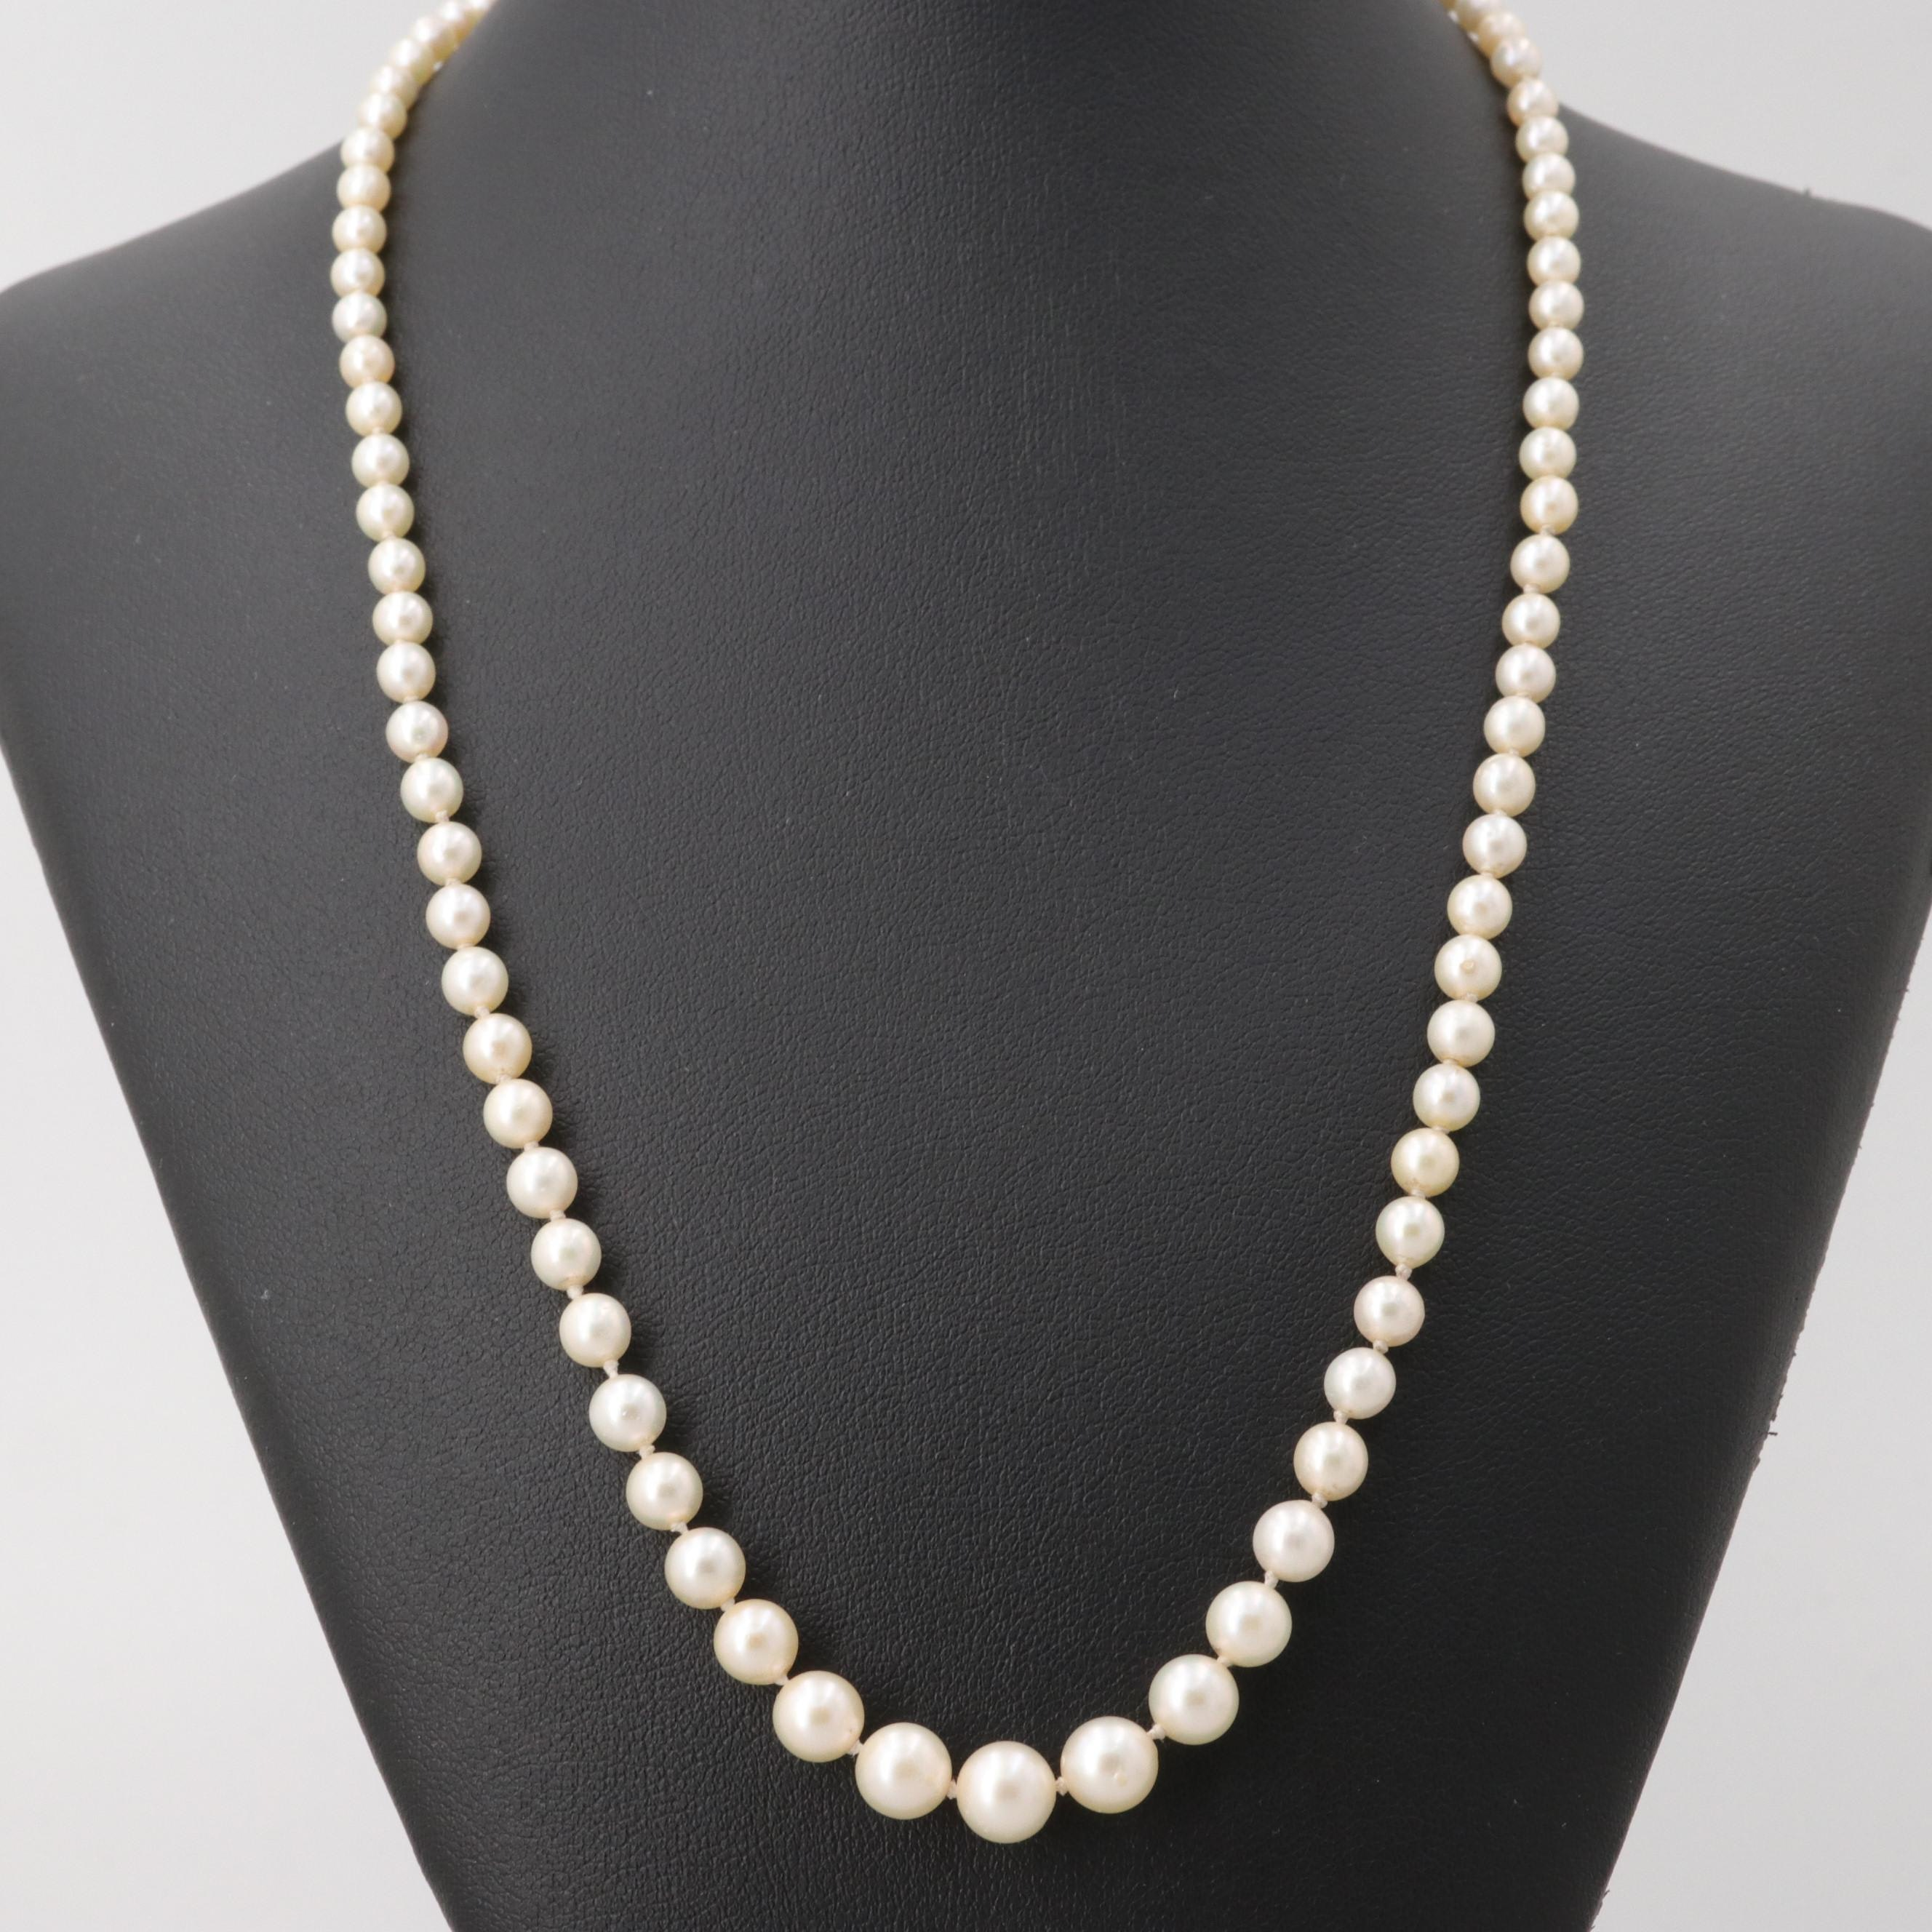 Vintage 14K White Gold Cultured Pearl Graduated Necklace with GIA Report